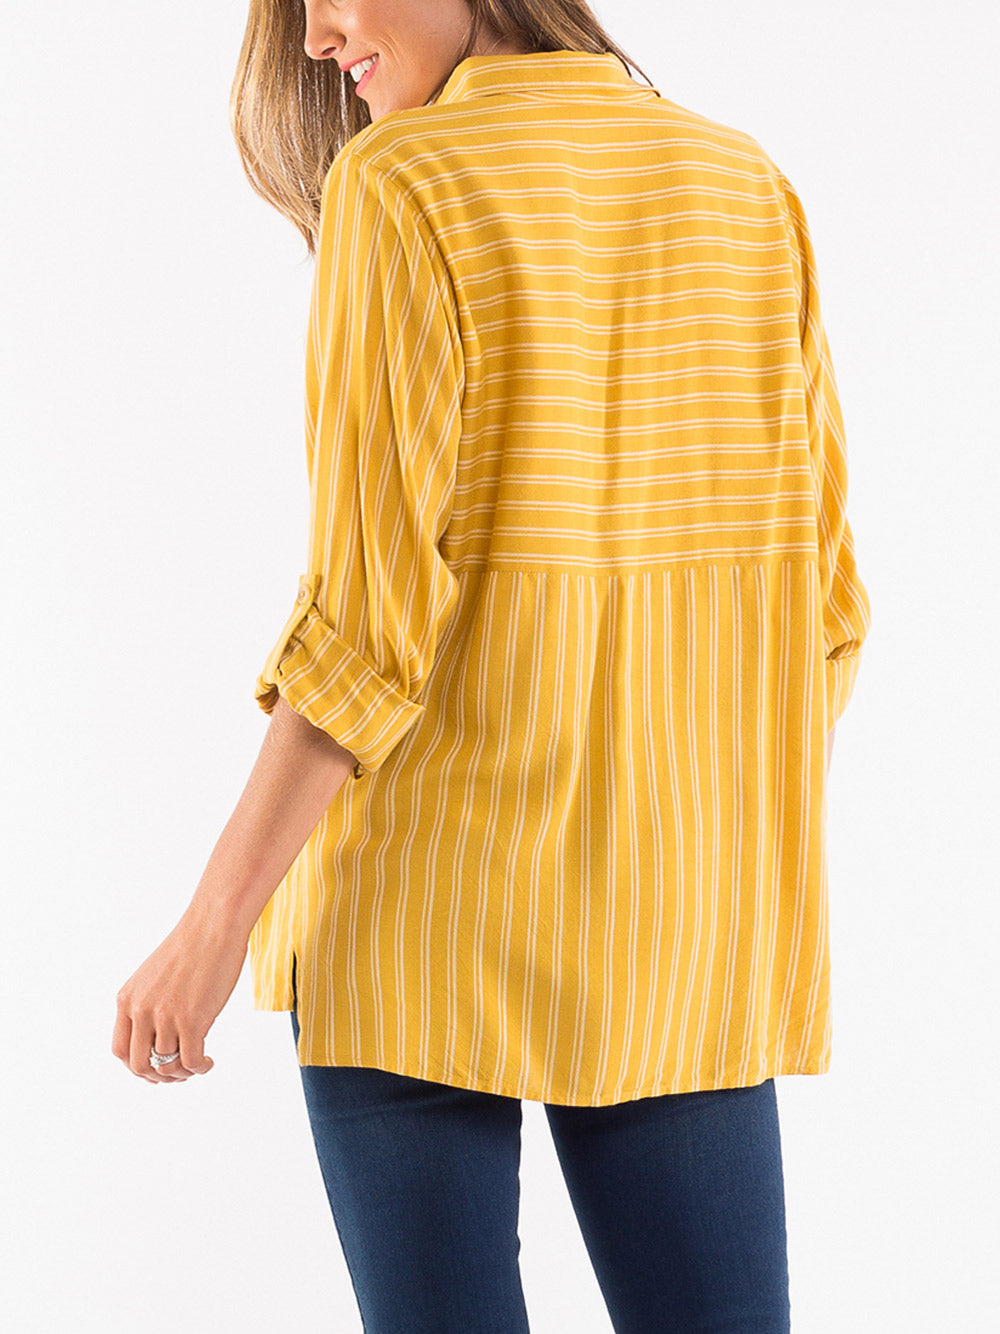 ELM LIFESTYLE Penny Stripe Shirt